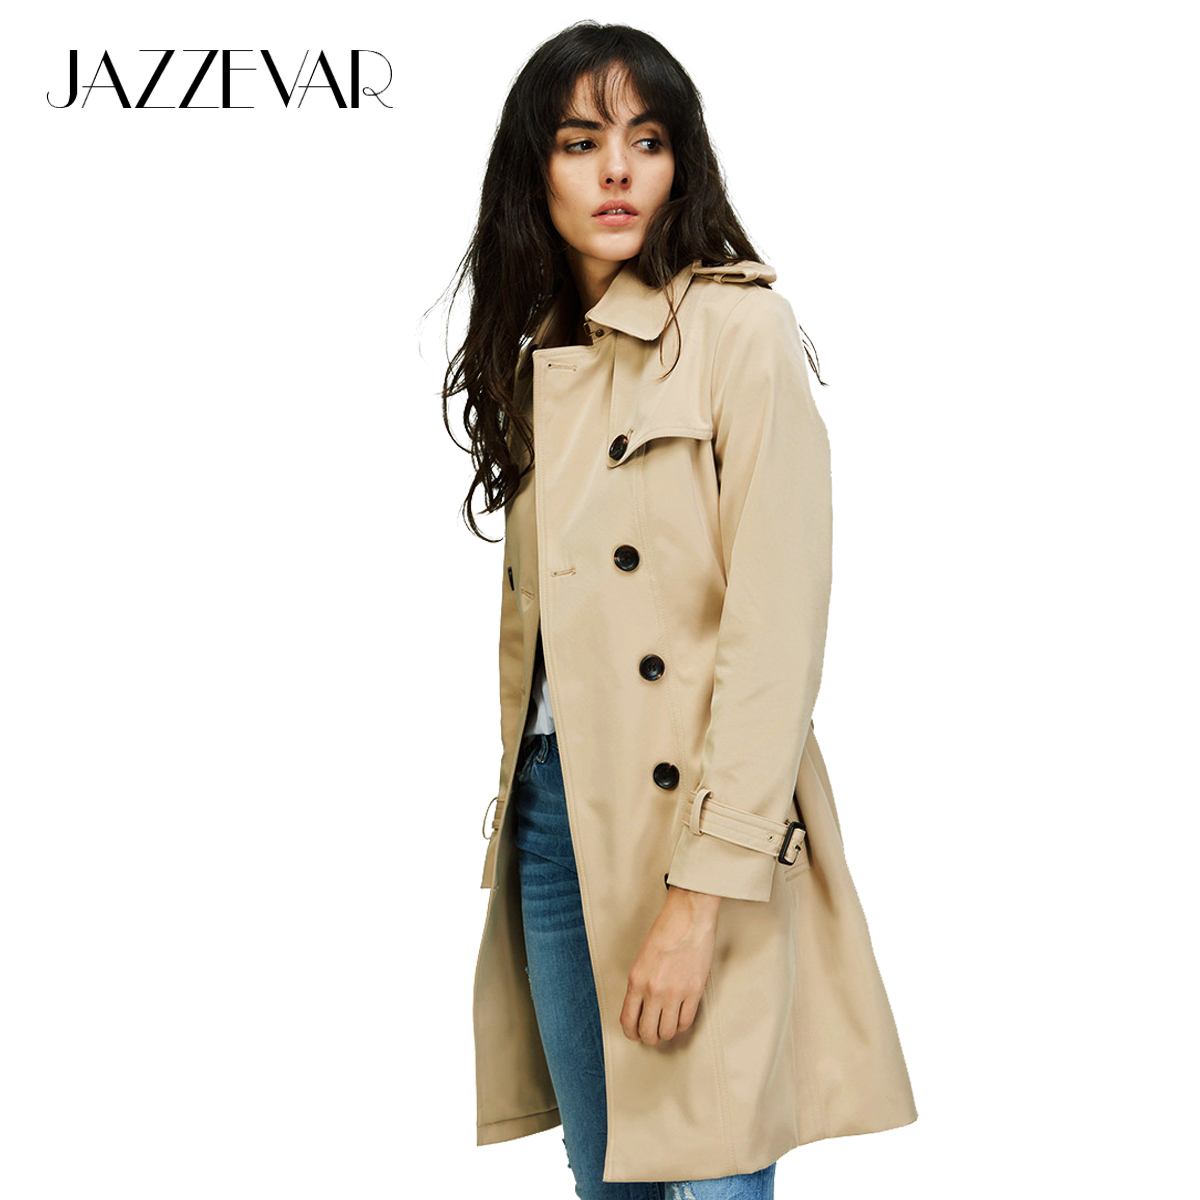 Jazzevar Autumn New High Fashion Brand Woman Classic Double Breasted Trench Coat Waterproof Raincoat Business Outerwear #1